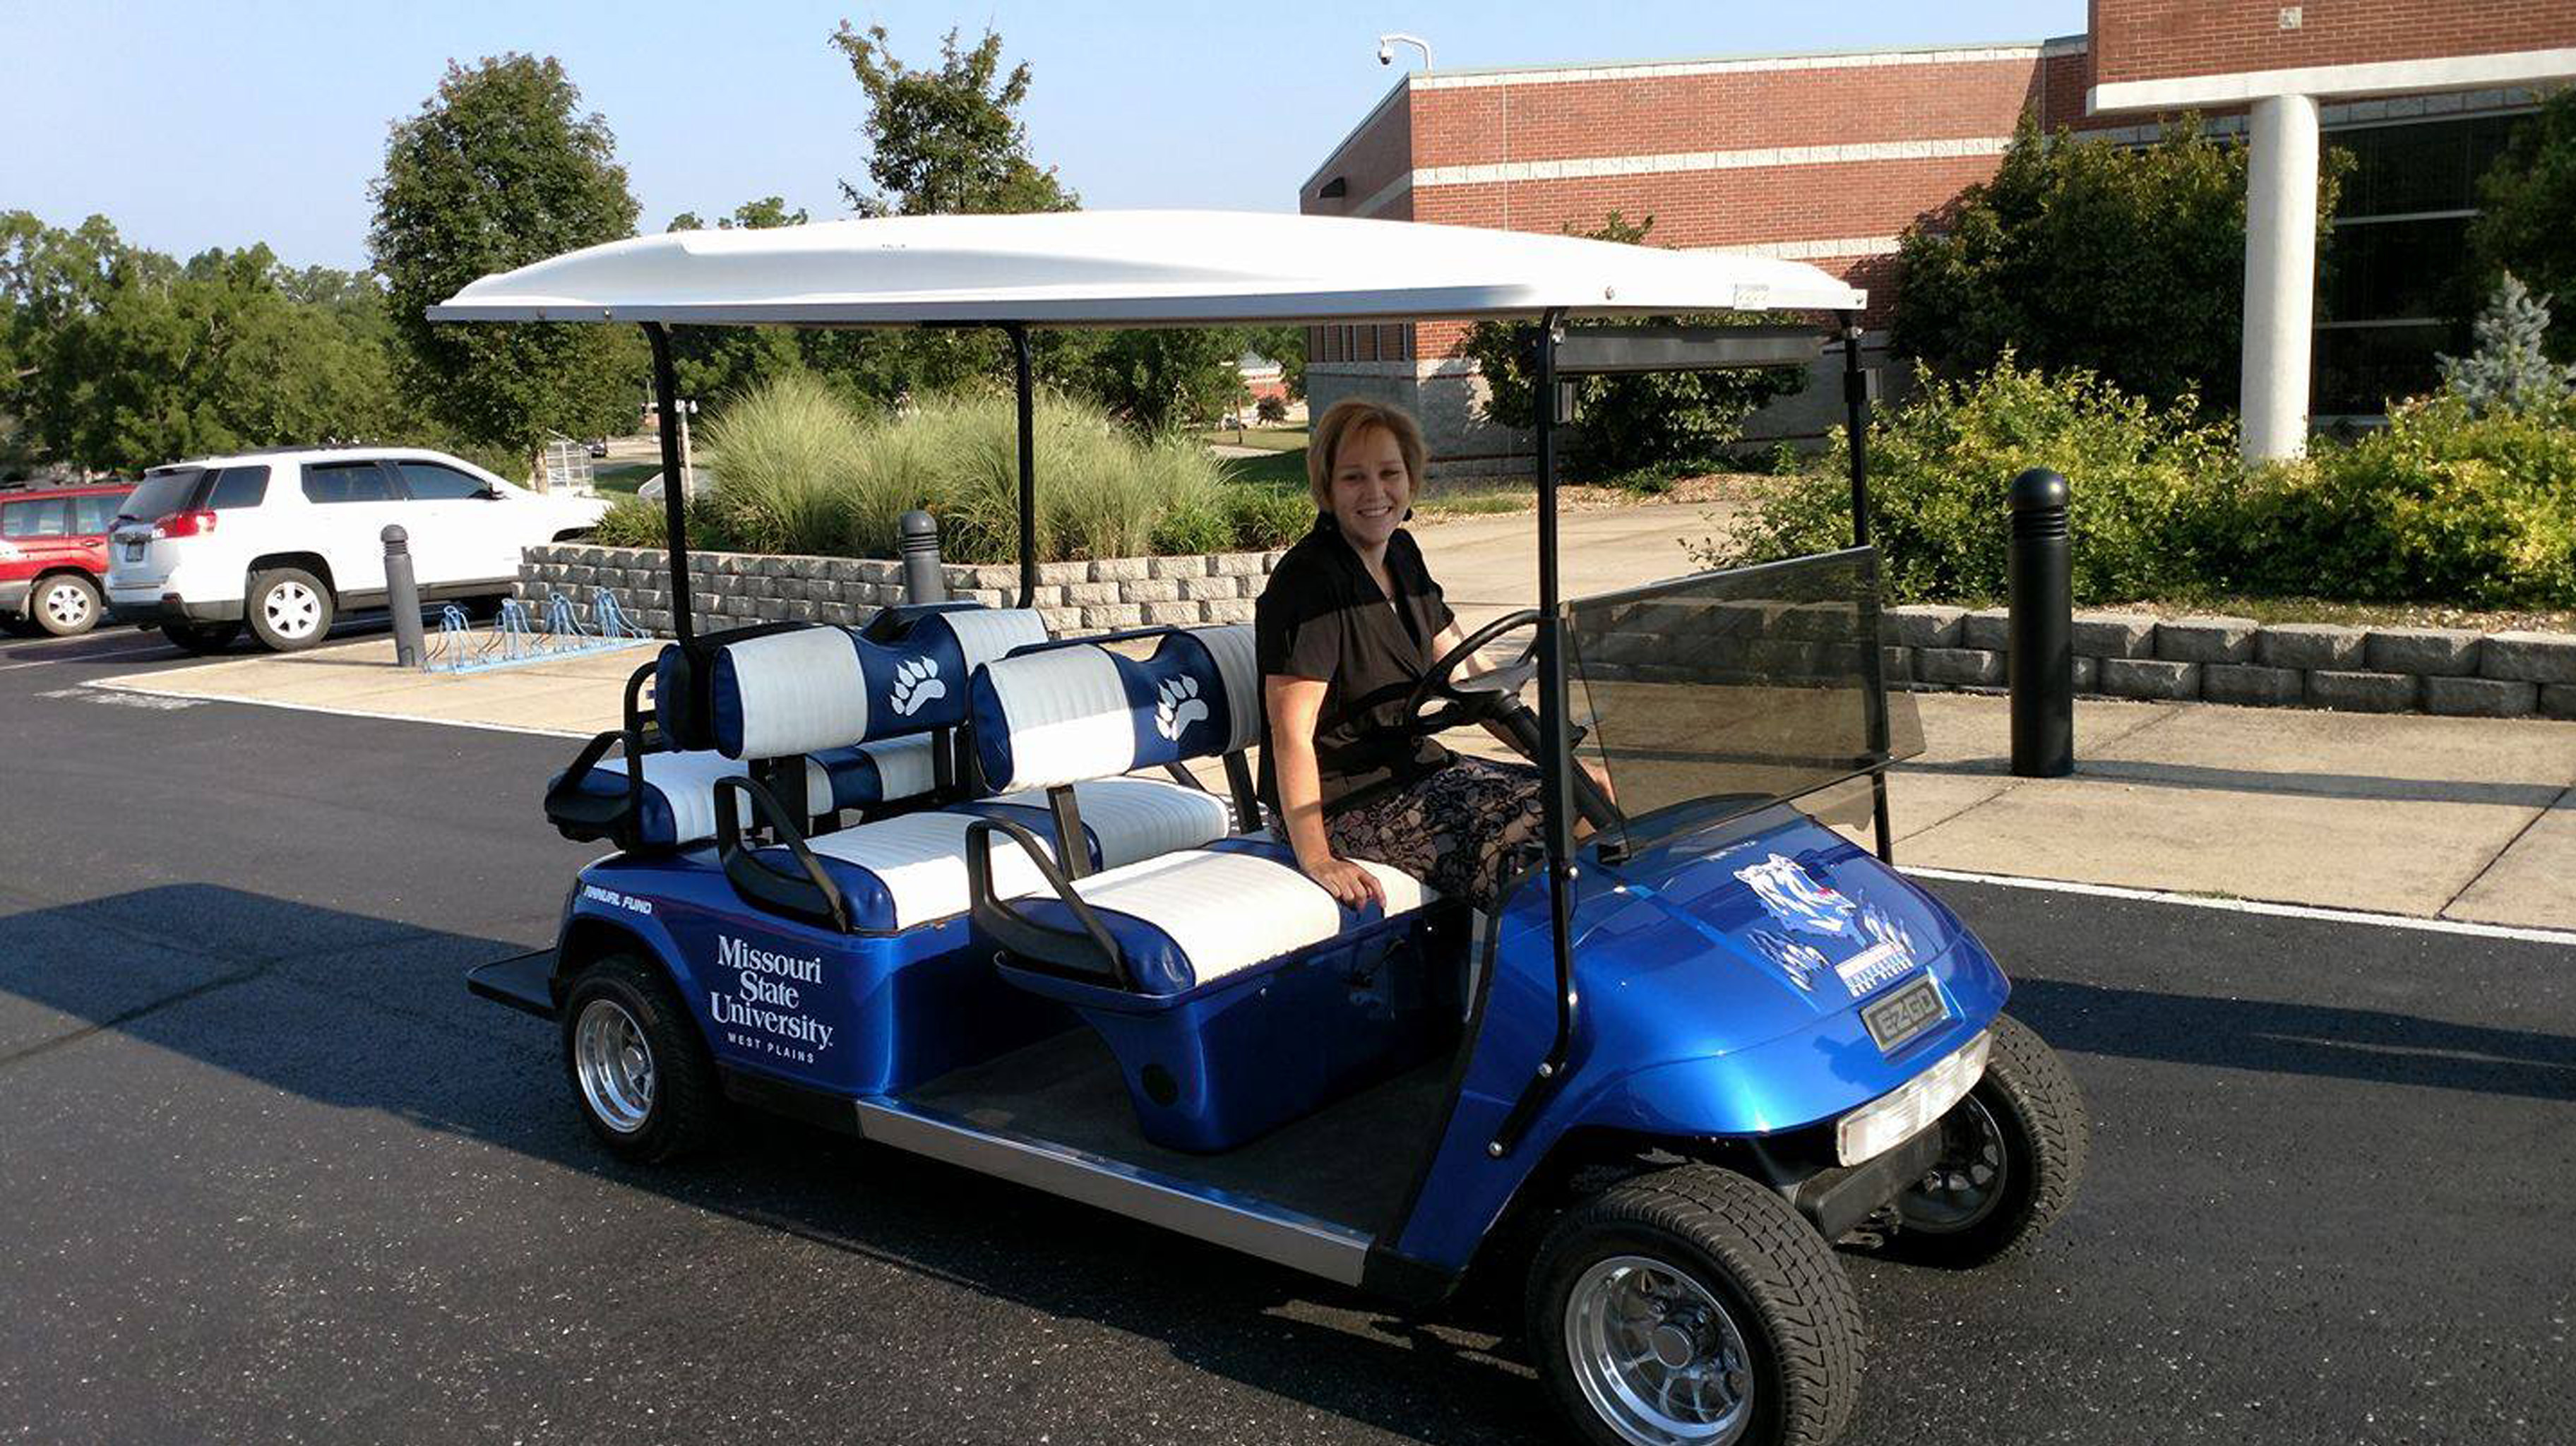 Missouri State University Golf Cart